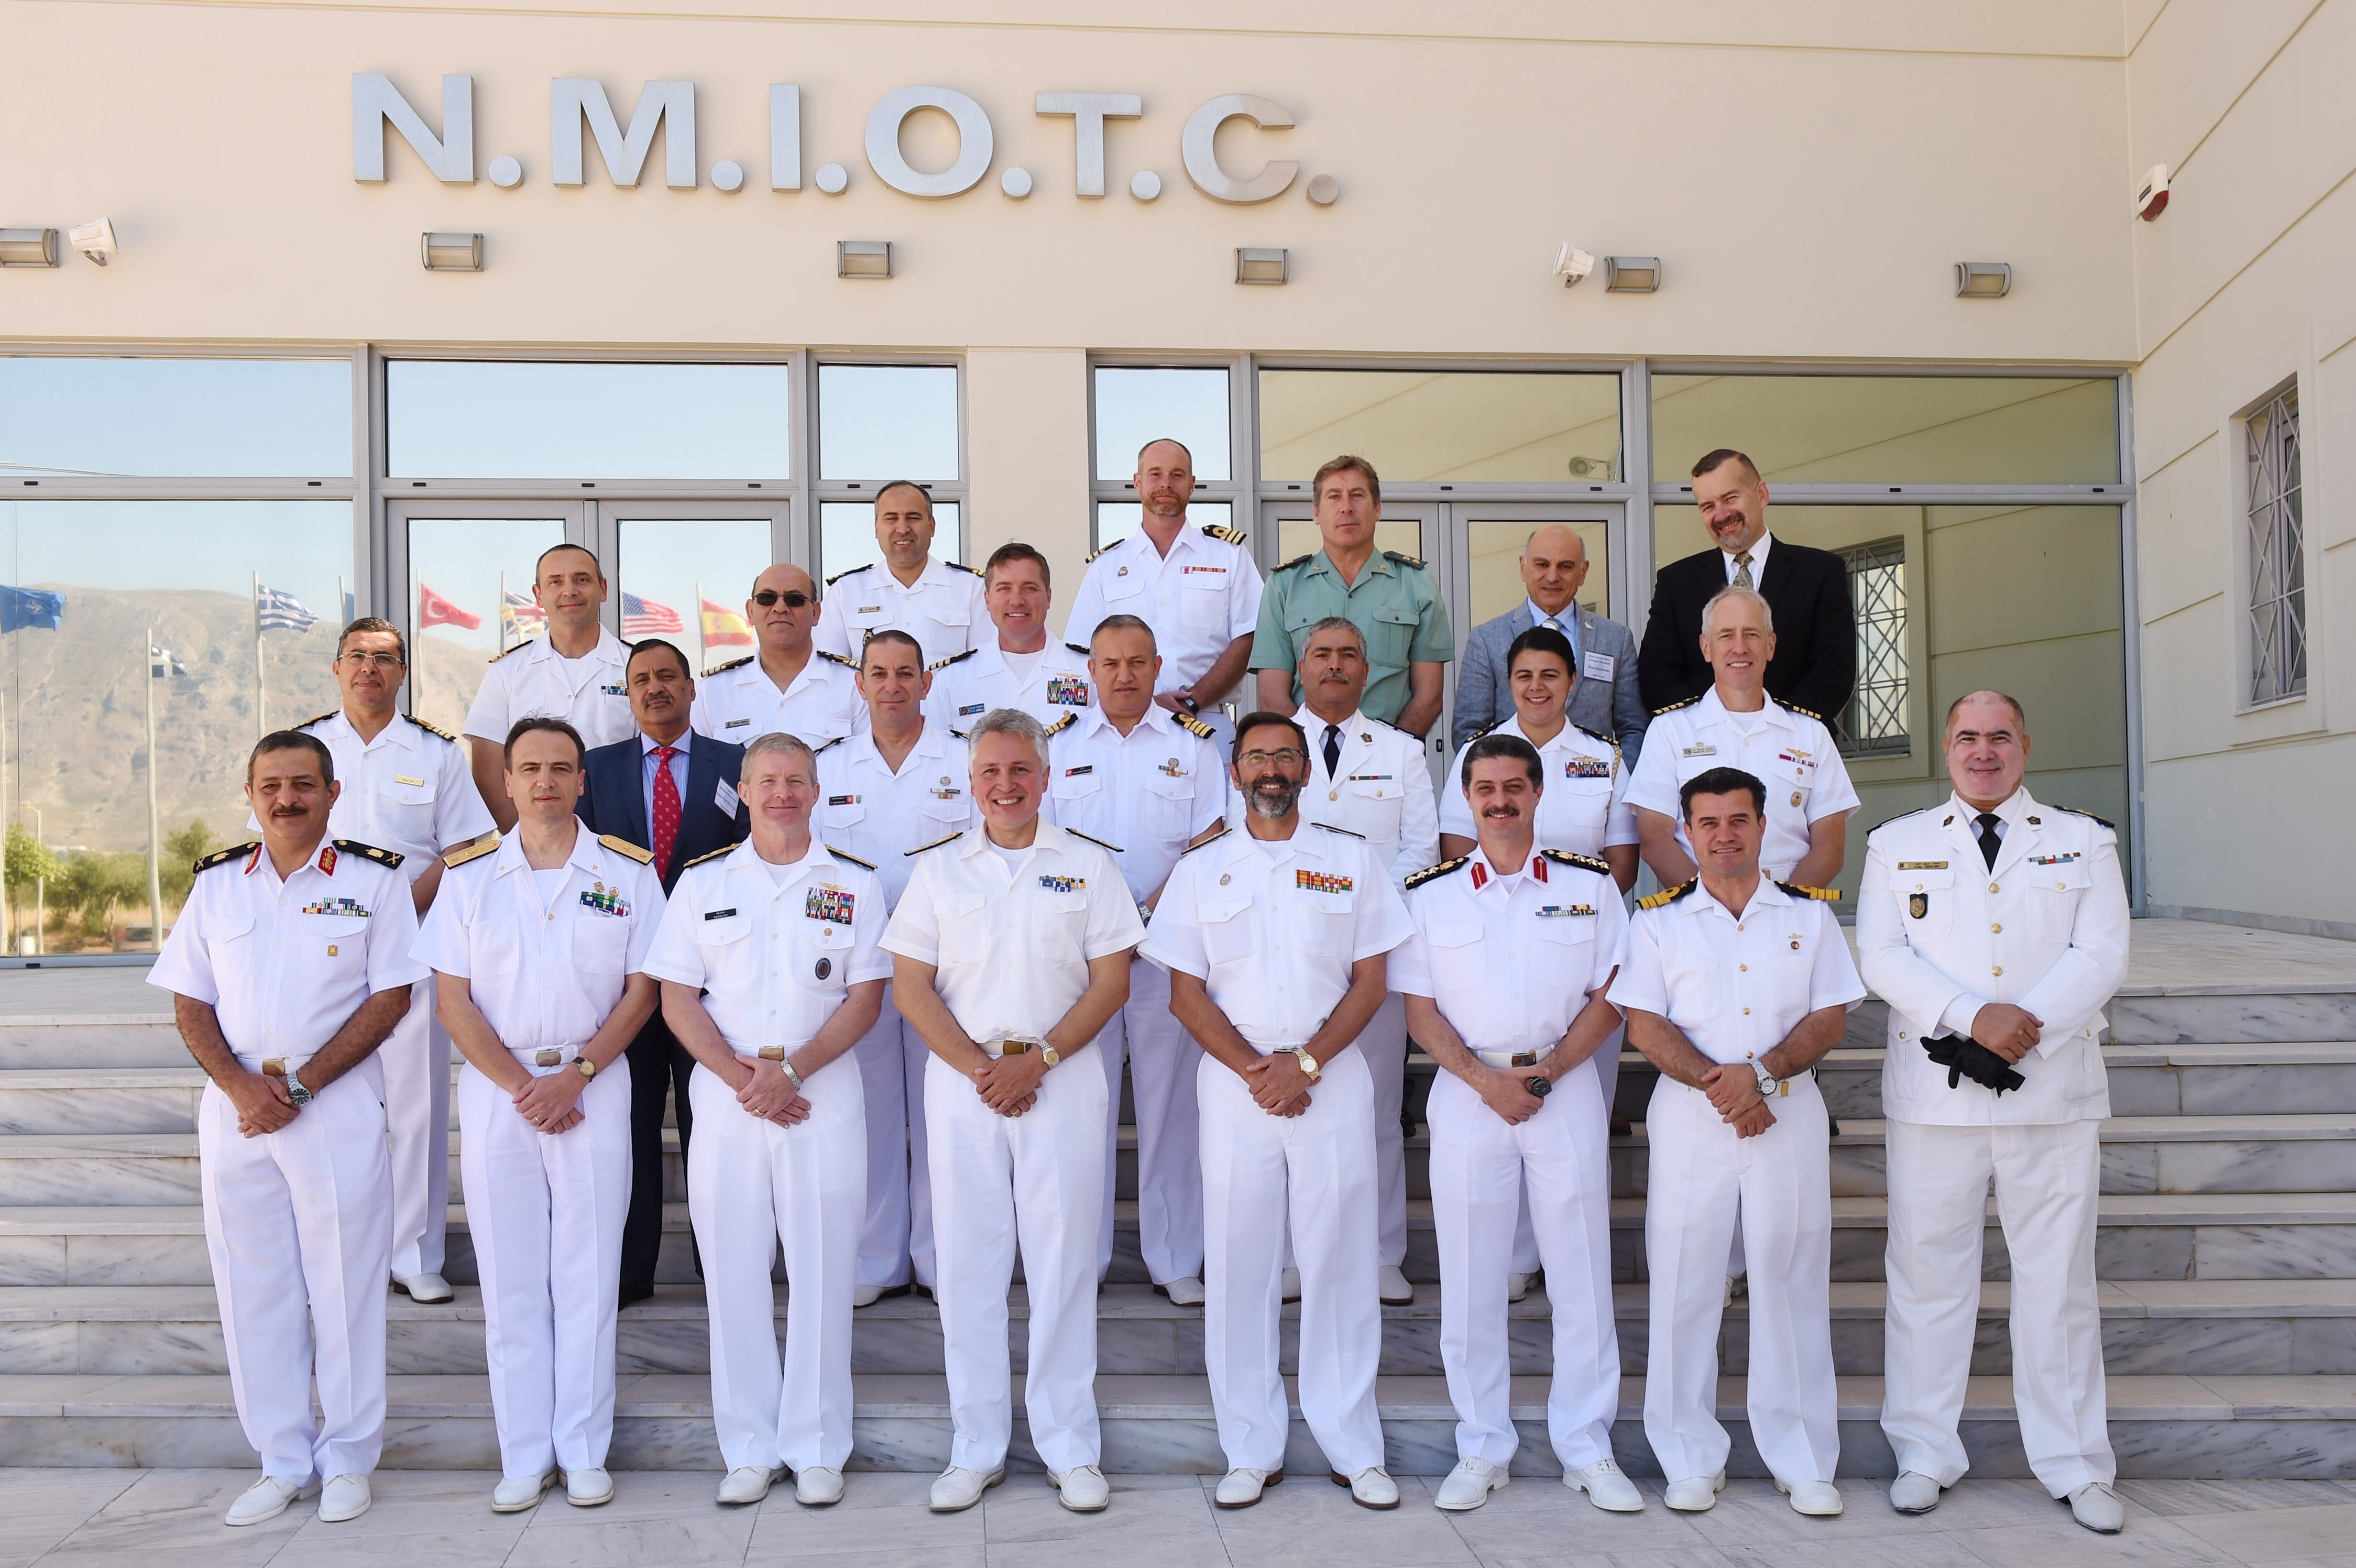 160517-N-XT273-424 SOUDA BAY, Greece (May 17, 2016) Senior leaders from North Africa, Europe and the U.S. pose for a group photo in front of the NATO Maritime Interdiction Operational Training Center after the Exercise Phoenix Express 2016 opening ceremony May 17. Phoenix Express 2016, sponsored and facilitated by U.S Africa Command, is designed to improve regional cooperation, increase maritime domain awareness, information-sharing practices, and operational capabilities to enhance efforts to achieve safety and security in the Mediterranean Sea. (U.S. Navy photo by Mass Communication Specialist 2nd Class Justin Stumberg/Released)